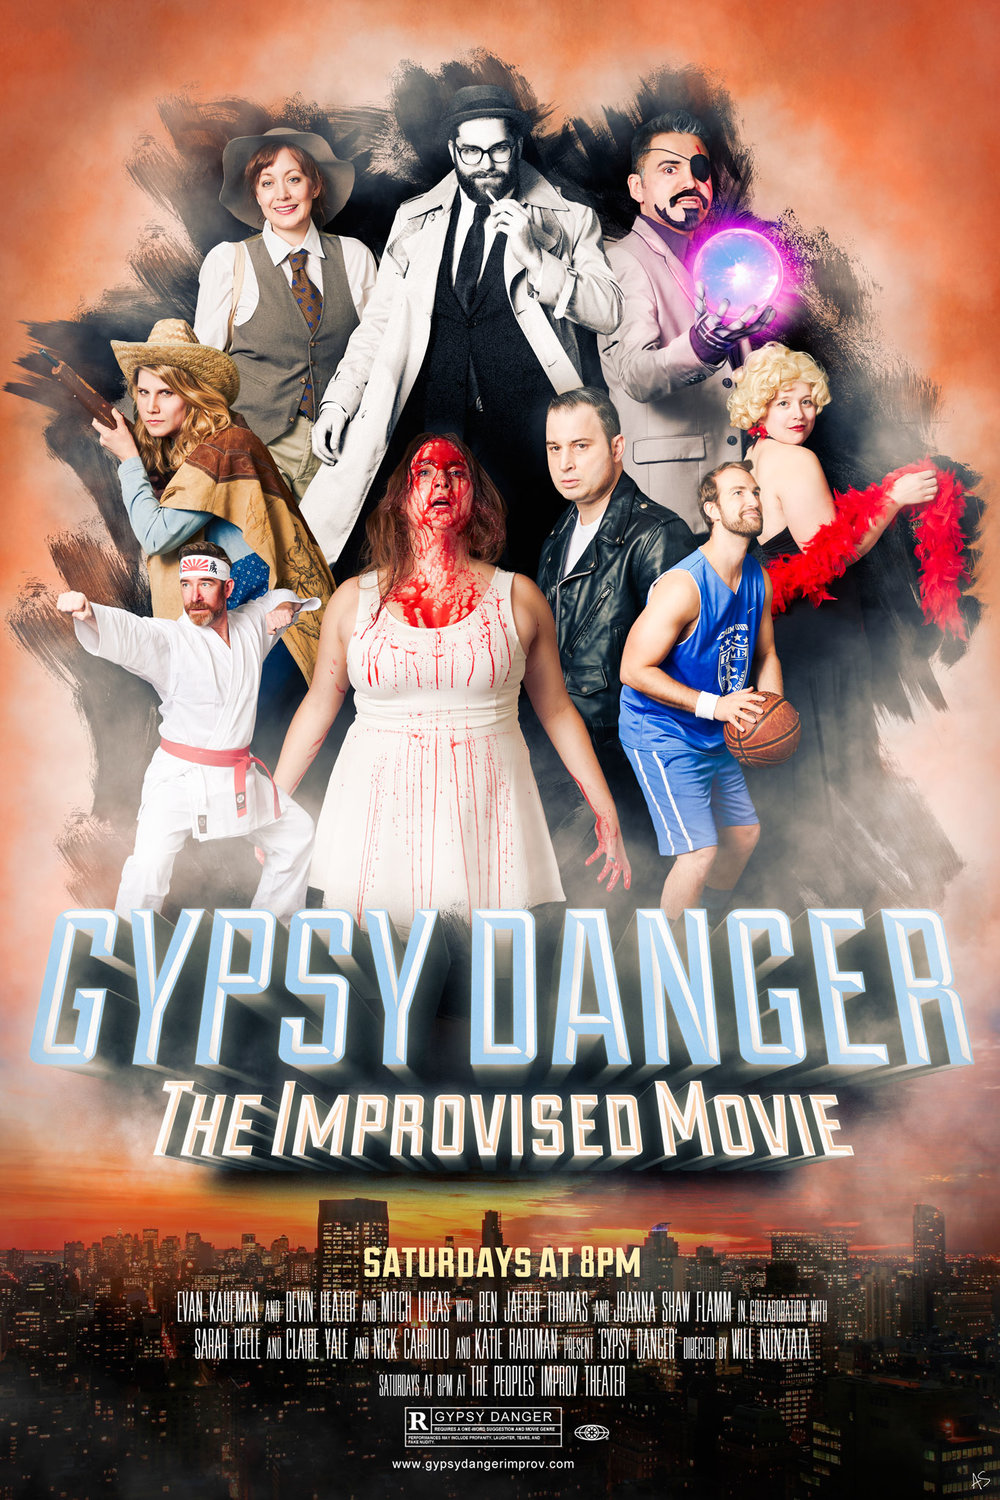 GYPSY DANGER - Gypsy Danger is a house team at the Peoples Improv Theater that improvises a movie every Saturday night! We've been a team for four wonderful years. They also let me live my dream of dressing like a basketball man.